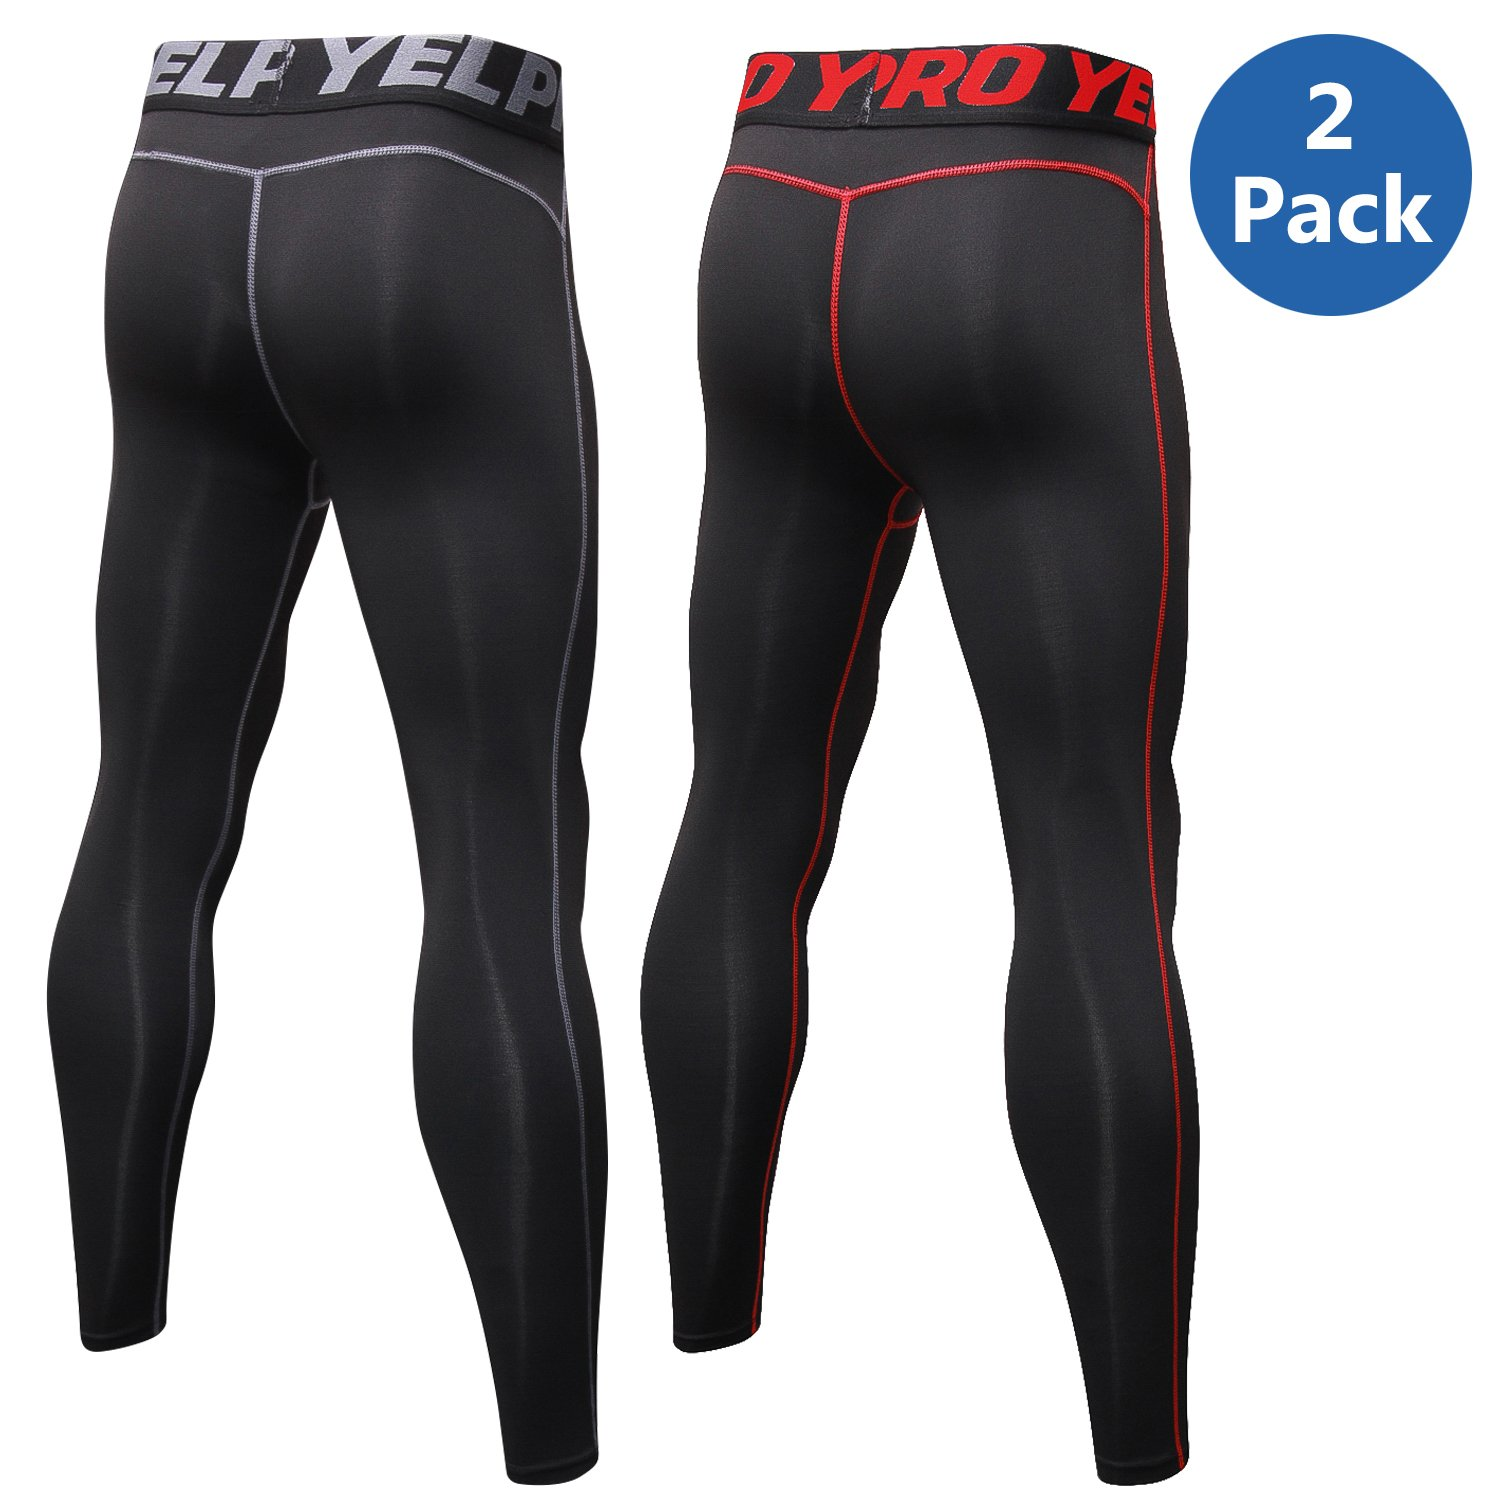 4fa515dd8d Amazon.com : VEEWOO Men's Compression Pants Baselayer Cool Dry Sports Tights  Leggings for Running, Workout, Training, Gym, Cycling : Clothing